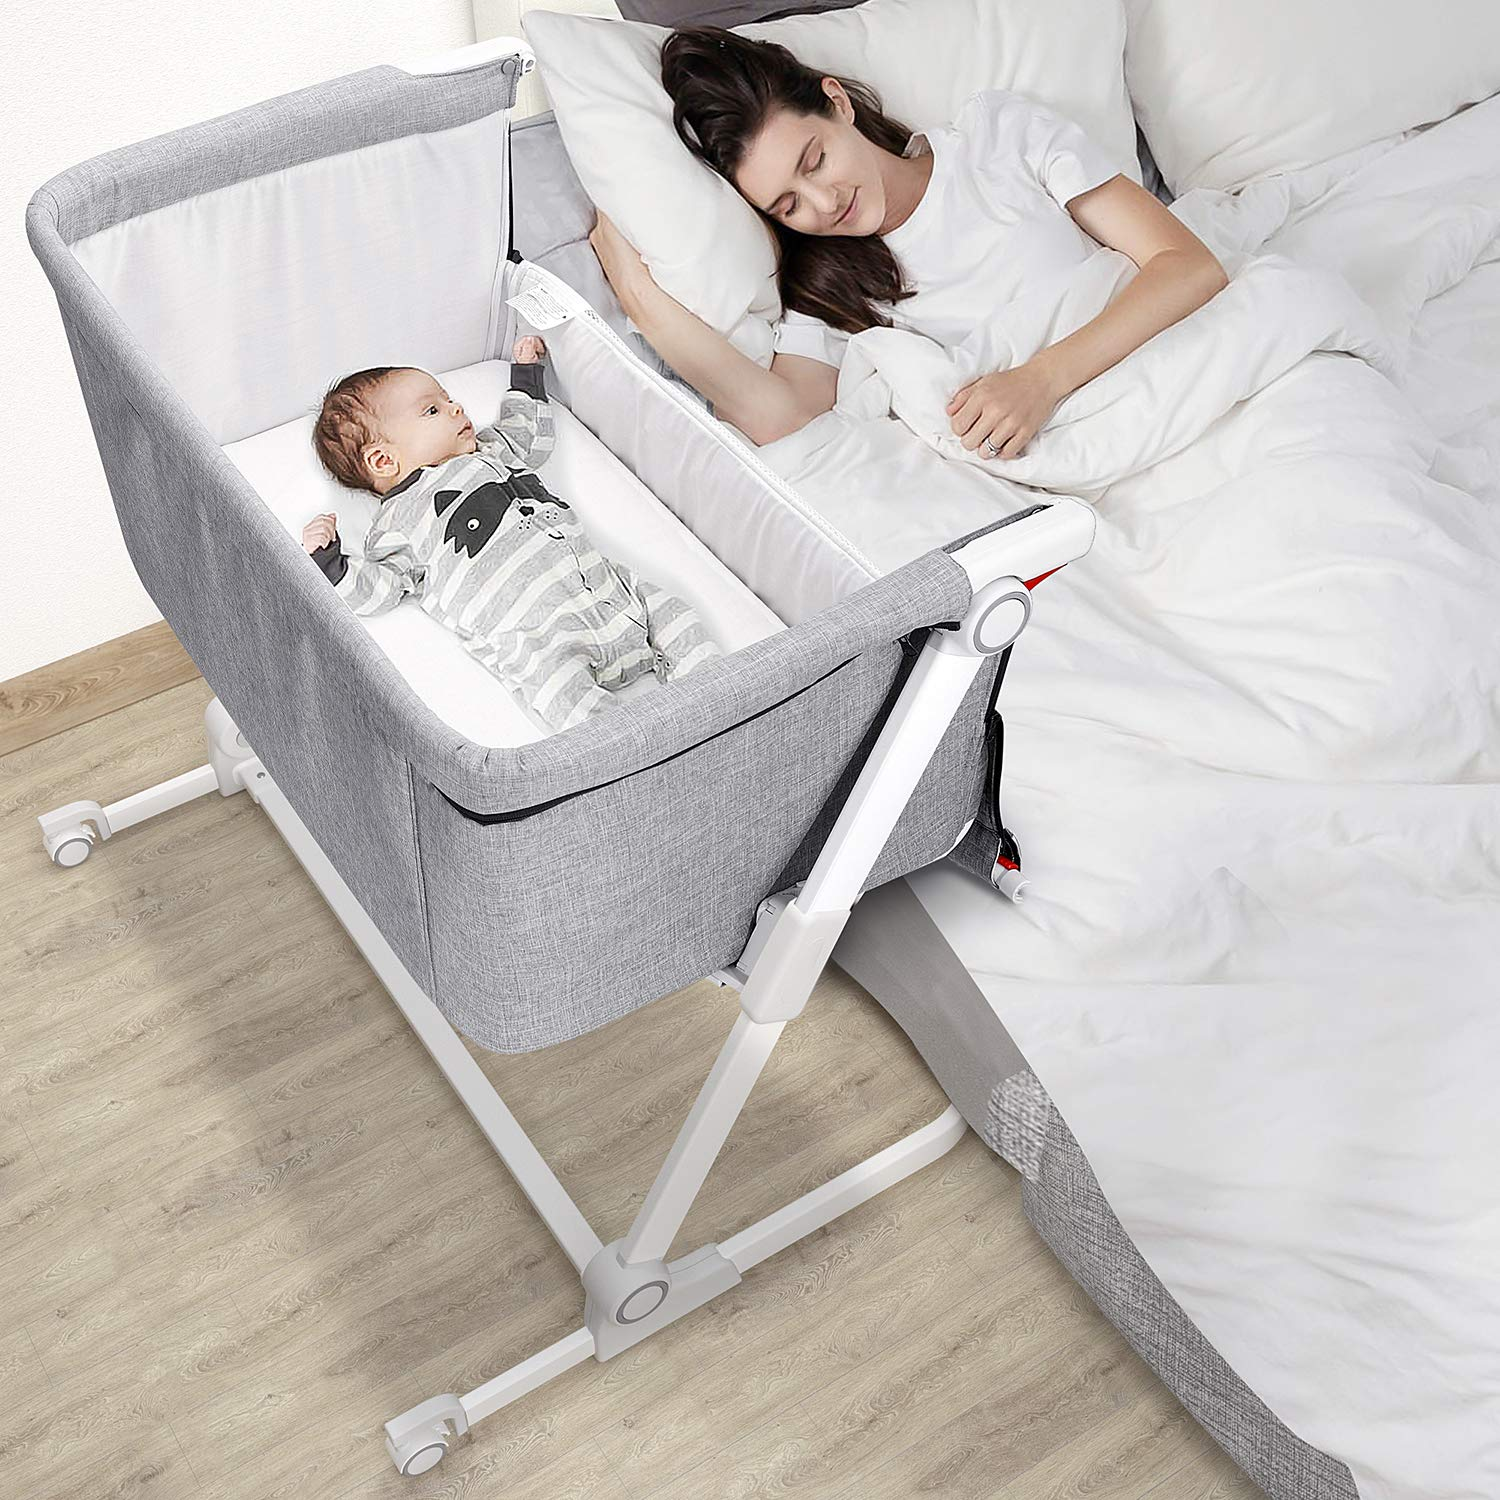 Gimars Folding Baby Beside Bassinet Sleeper,Bedside Crib Bed for Baby/Infant/Newborn Boys or Girls with Built-in Wheels (Grey)